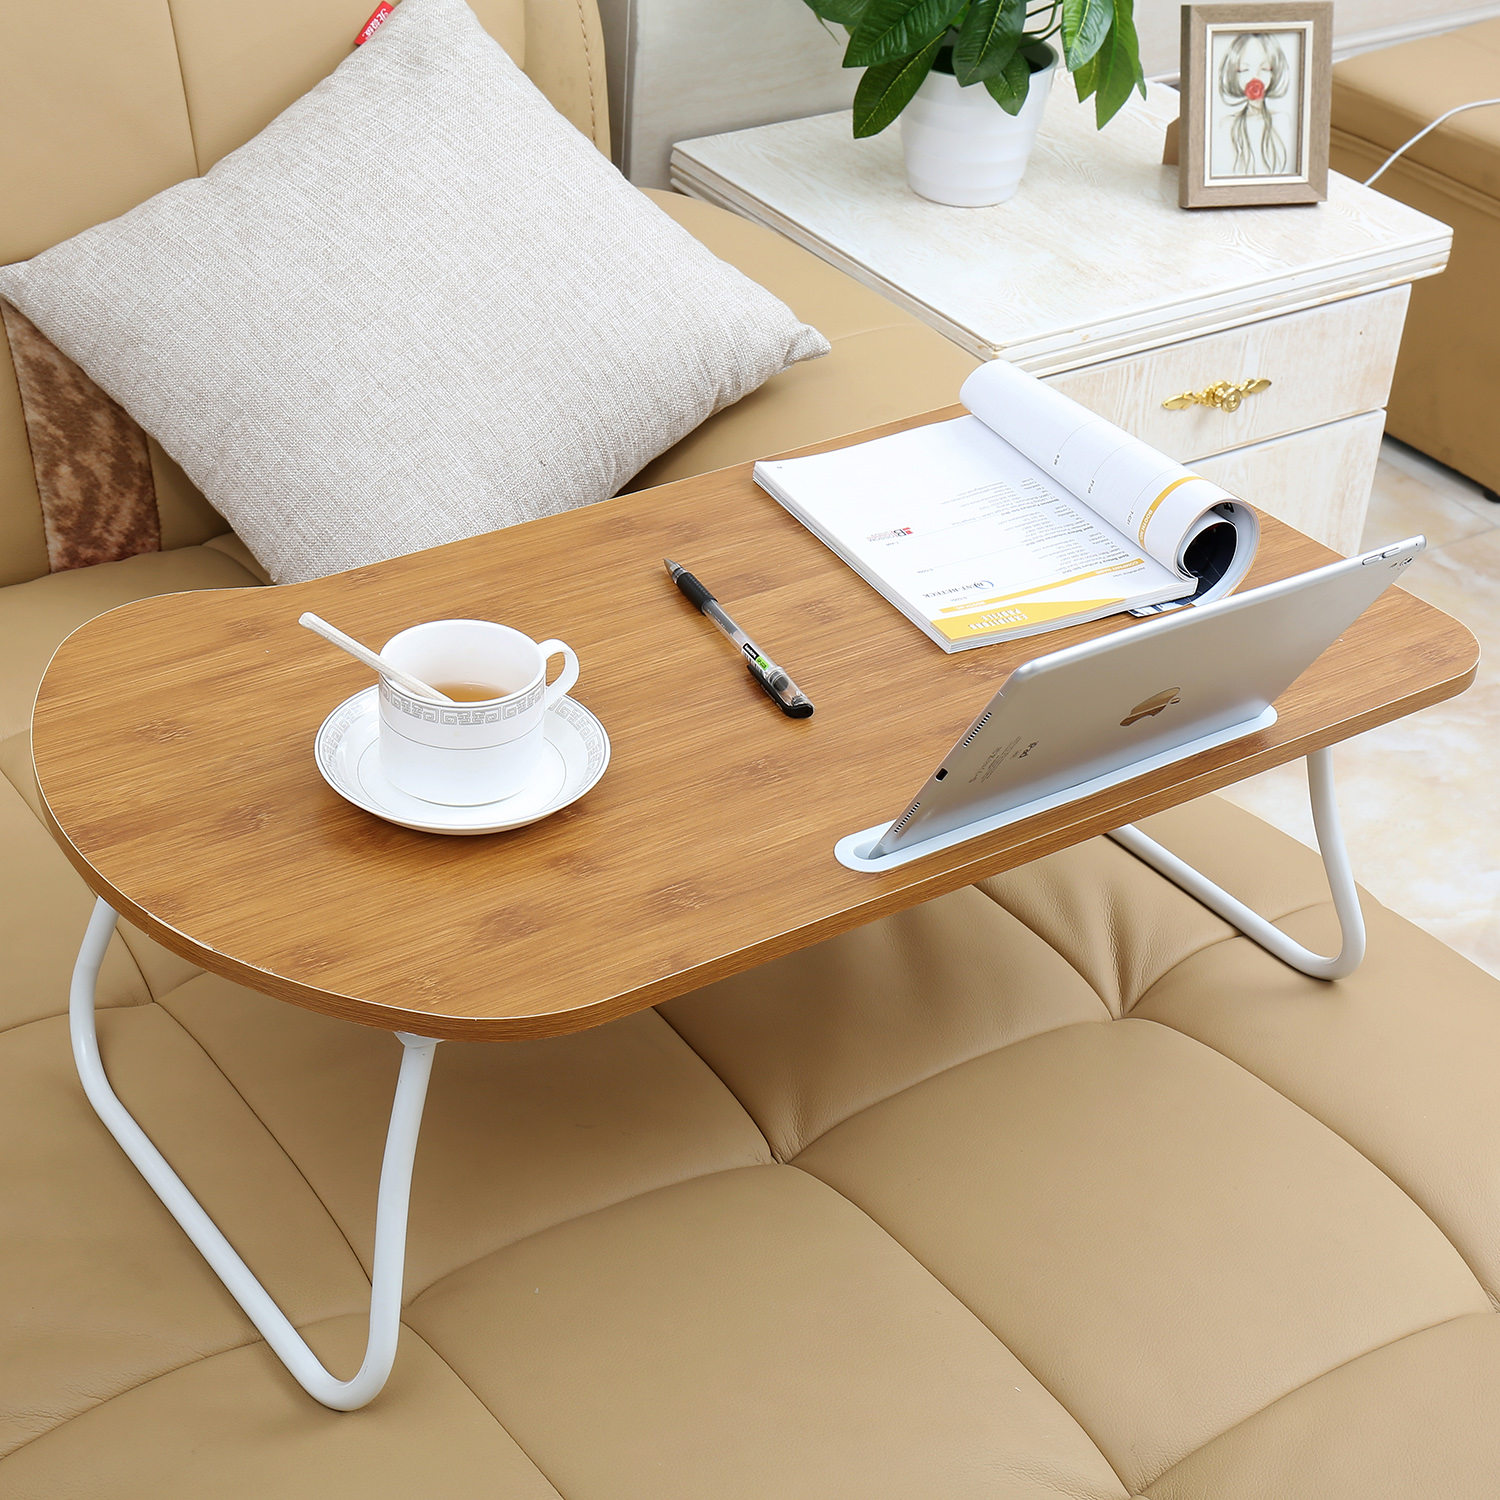 27 Laptop Table Desk Lap Stand Sofa Bed Tray Computer Notebook With Tablet Slot